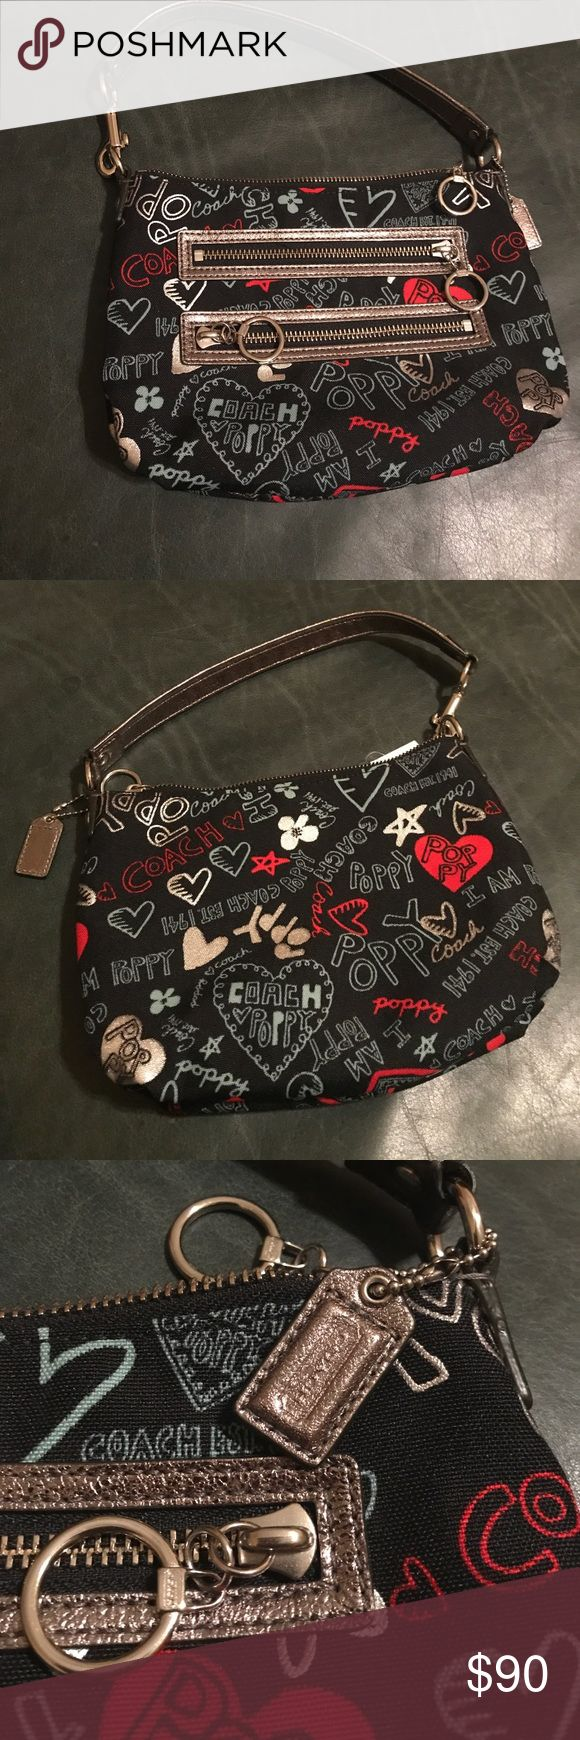 Coach poppy graffiti glam hearts NWT Coach poppy purse pretty black base with multicolor writing.  Purchased at Nordstrom.  No flaws at all.  RARE!  Make me an offer!  100% authentic. Coach Bags